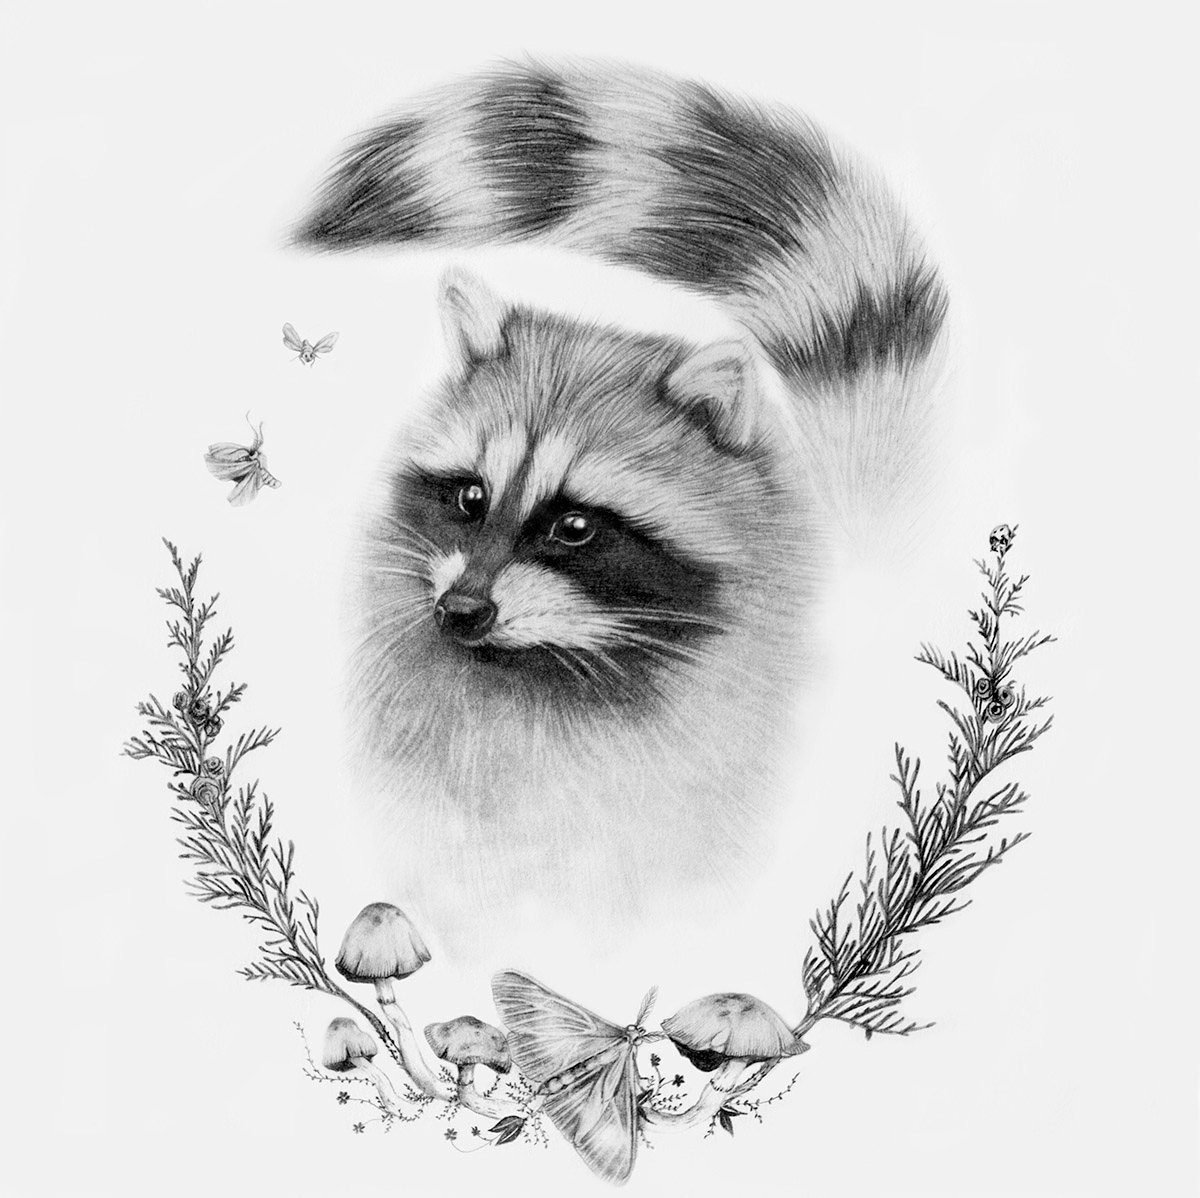 raccoon drawing raccoon costume cute delicious raccoon drawing